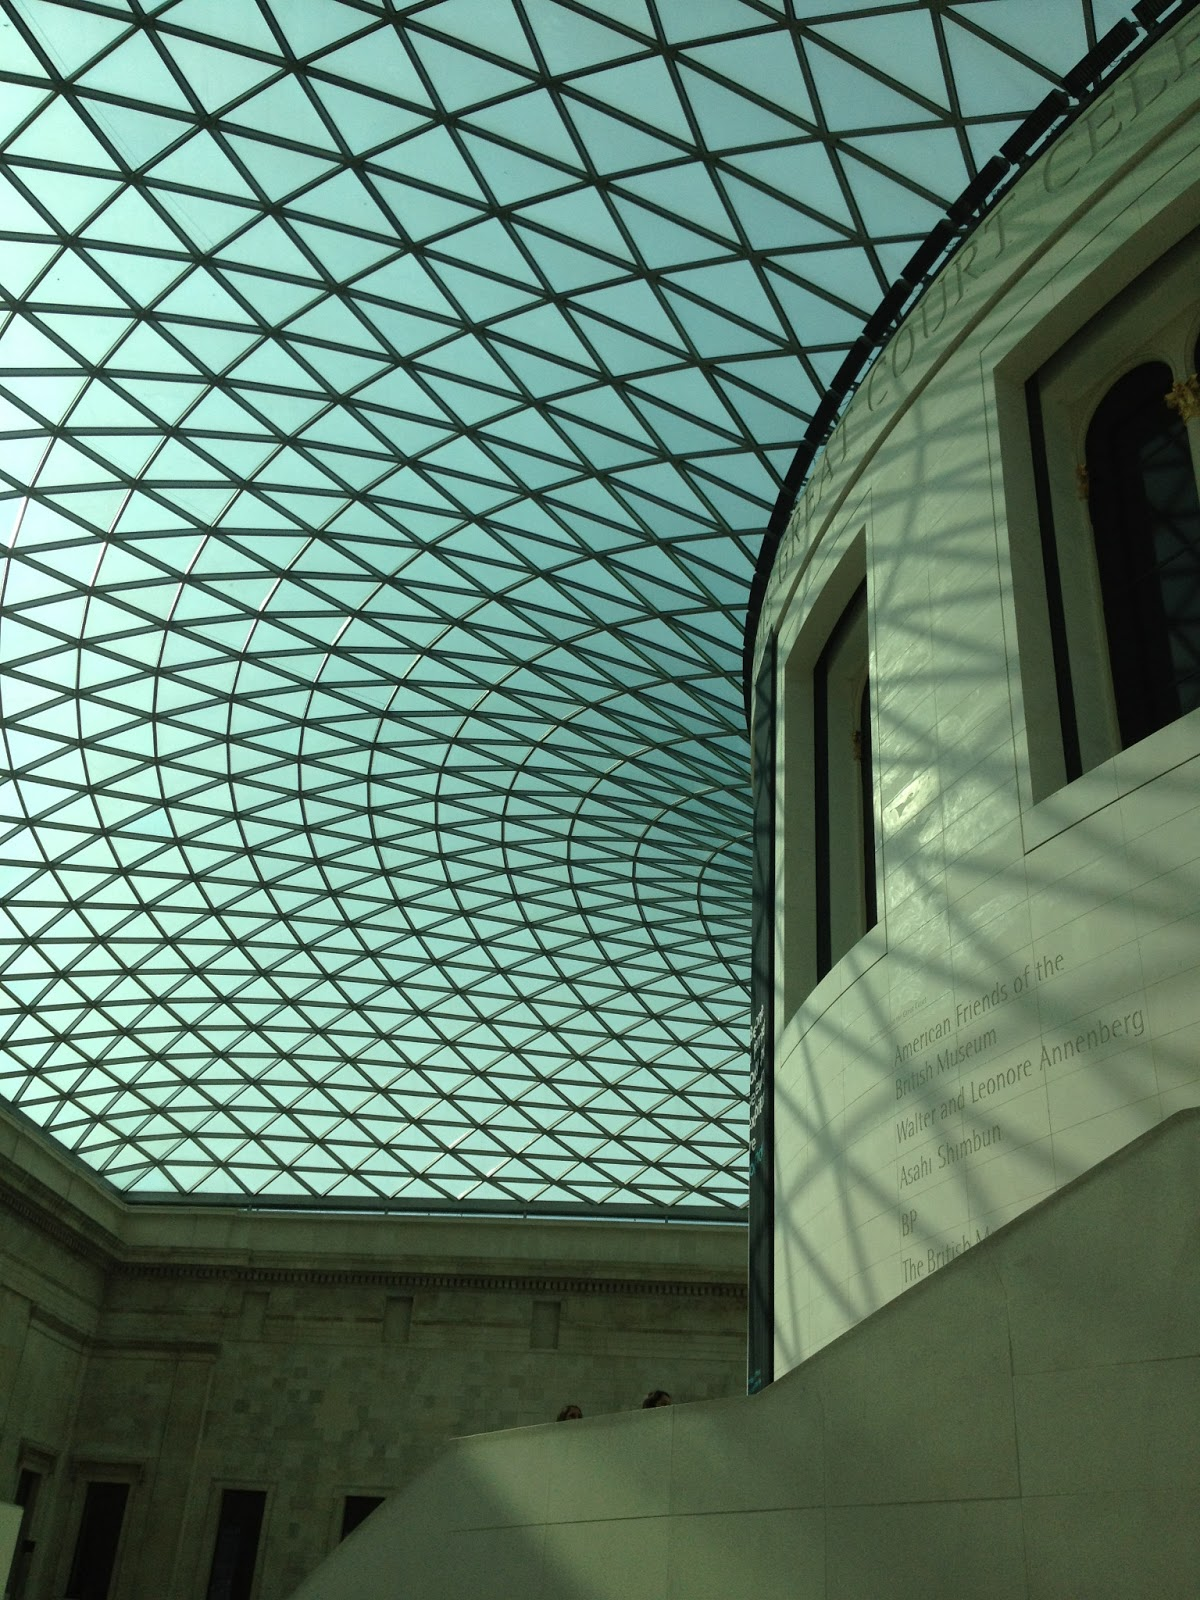 Ice age Art at the British Museum – is spring here?